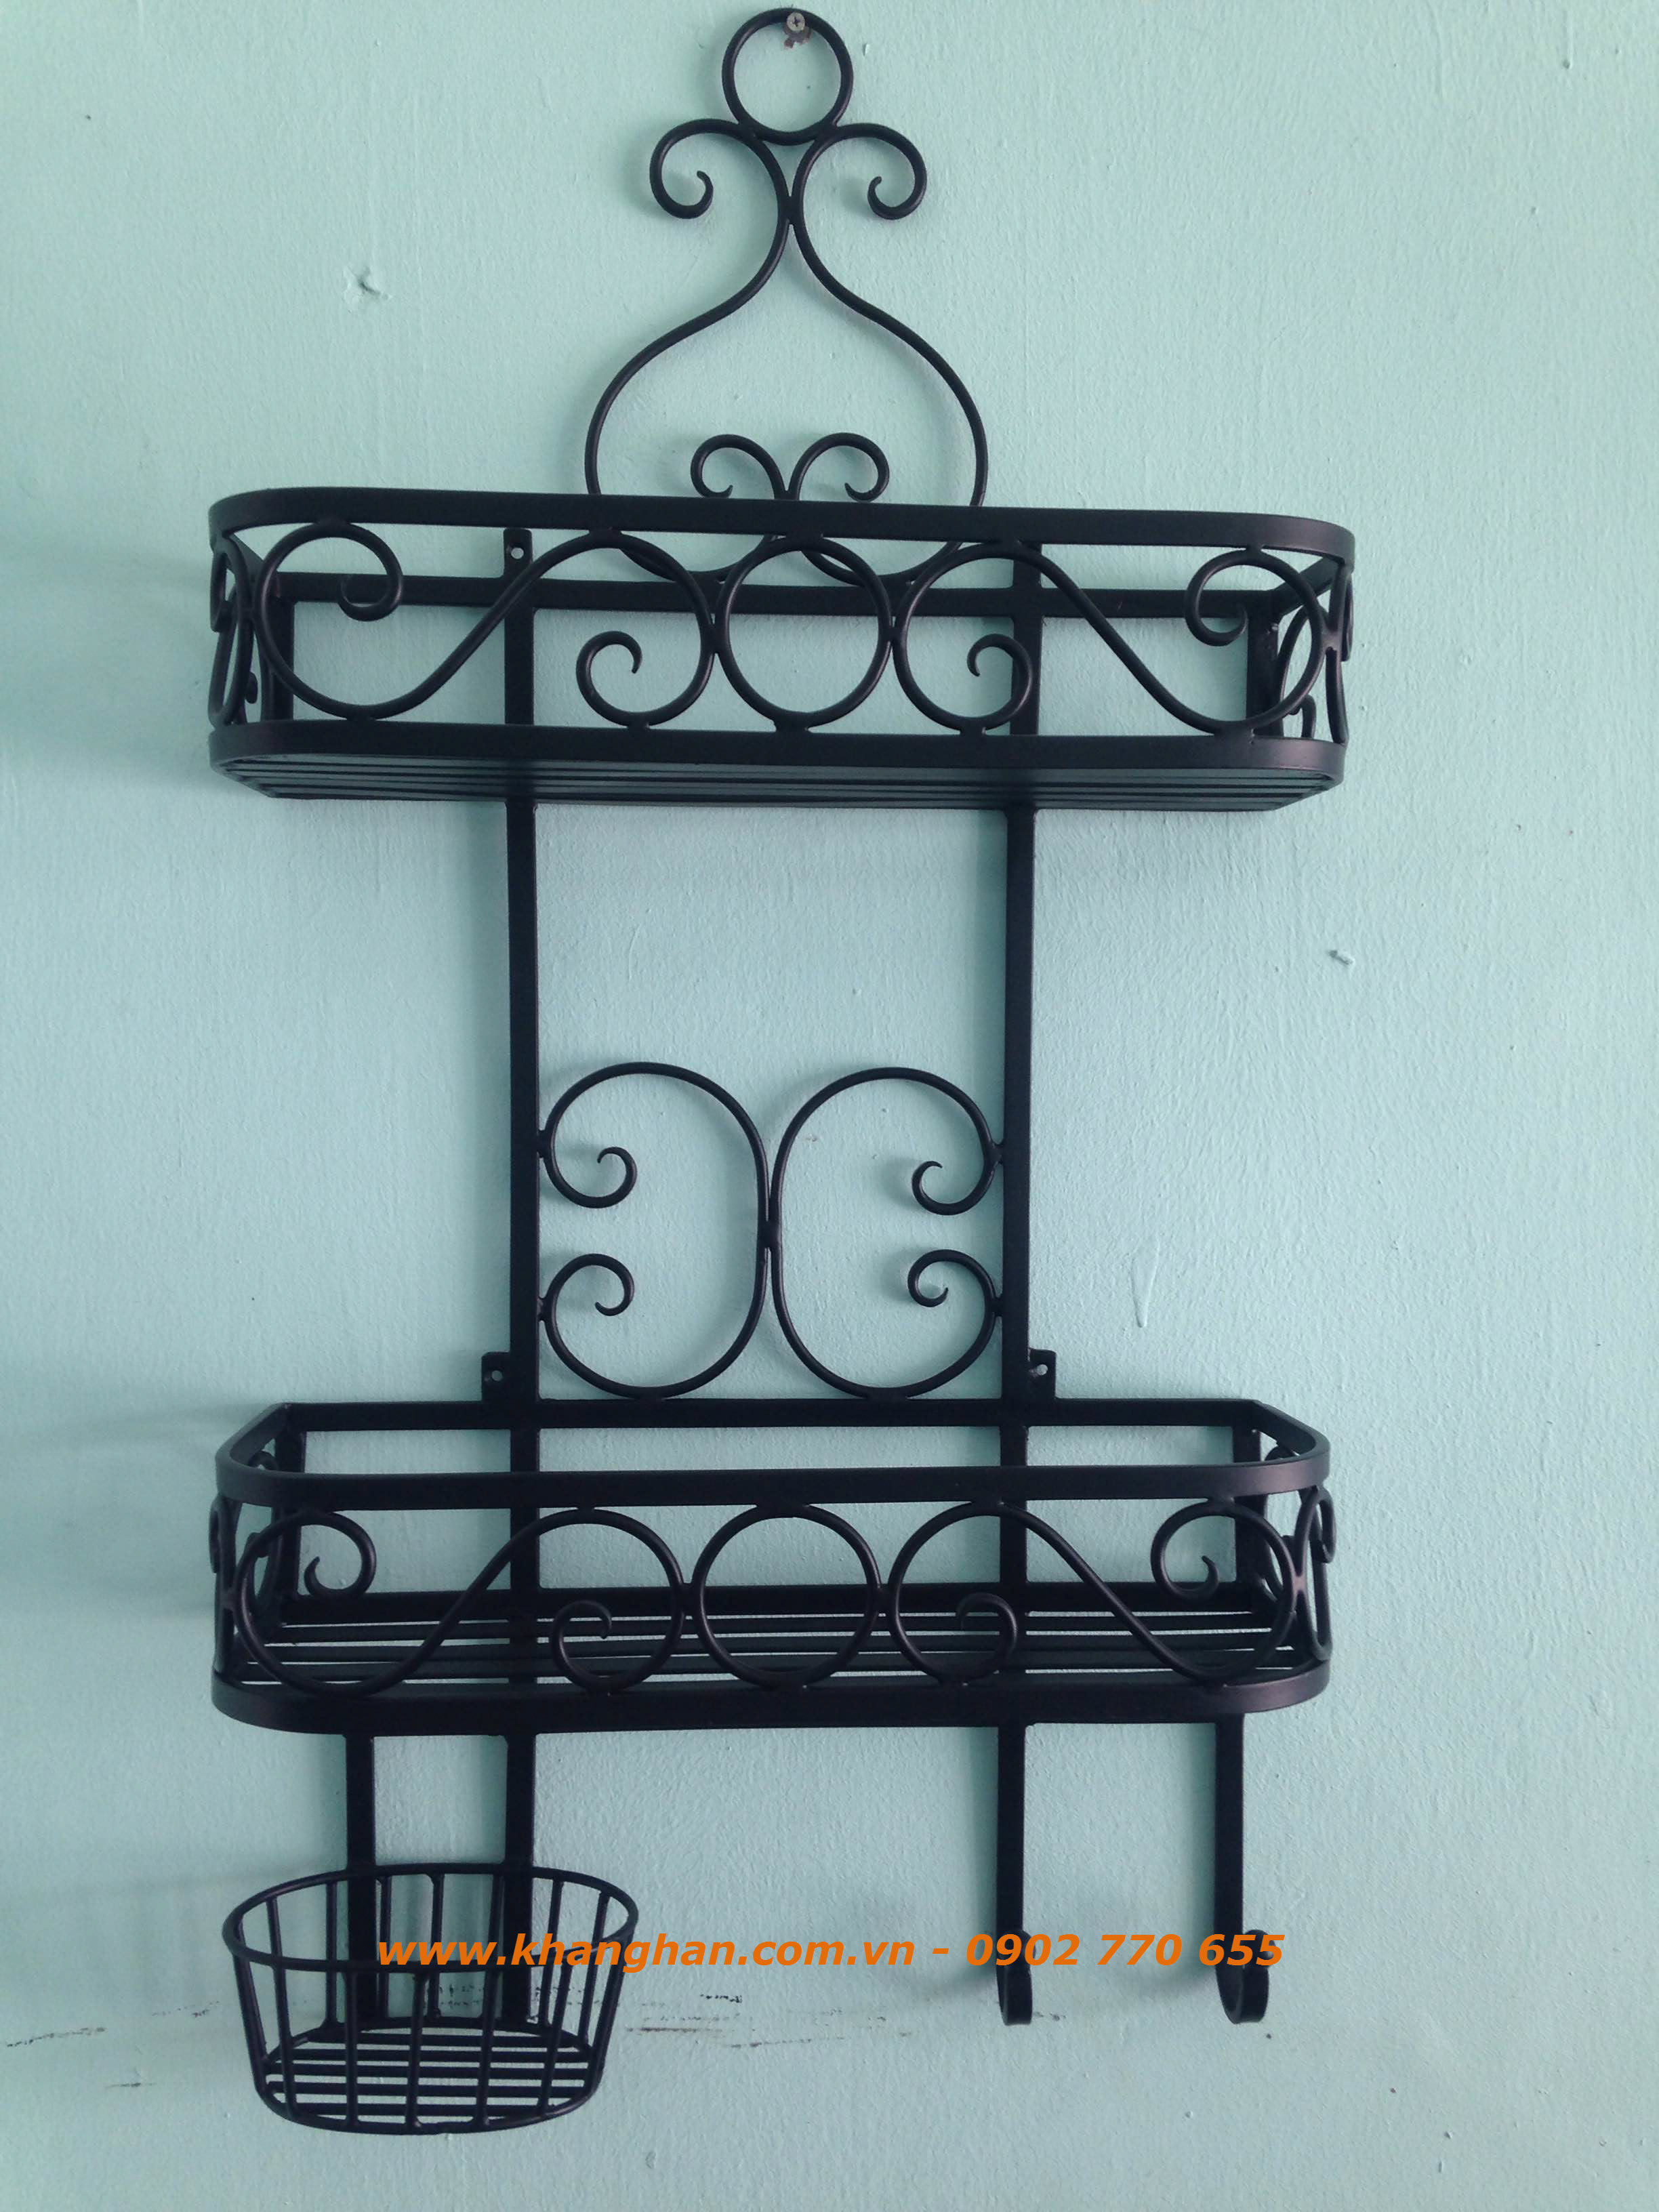 Decorative iron shelves KH15-STT001